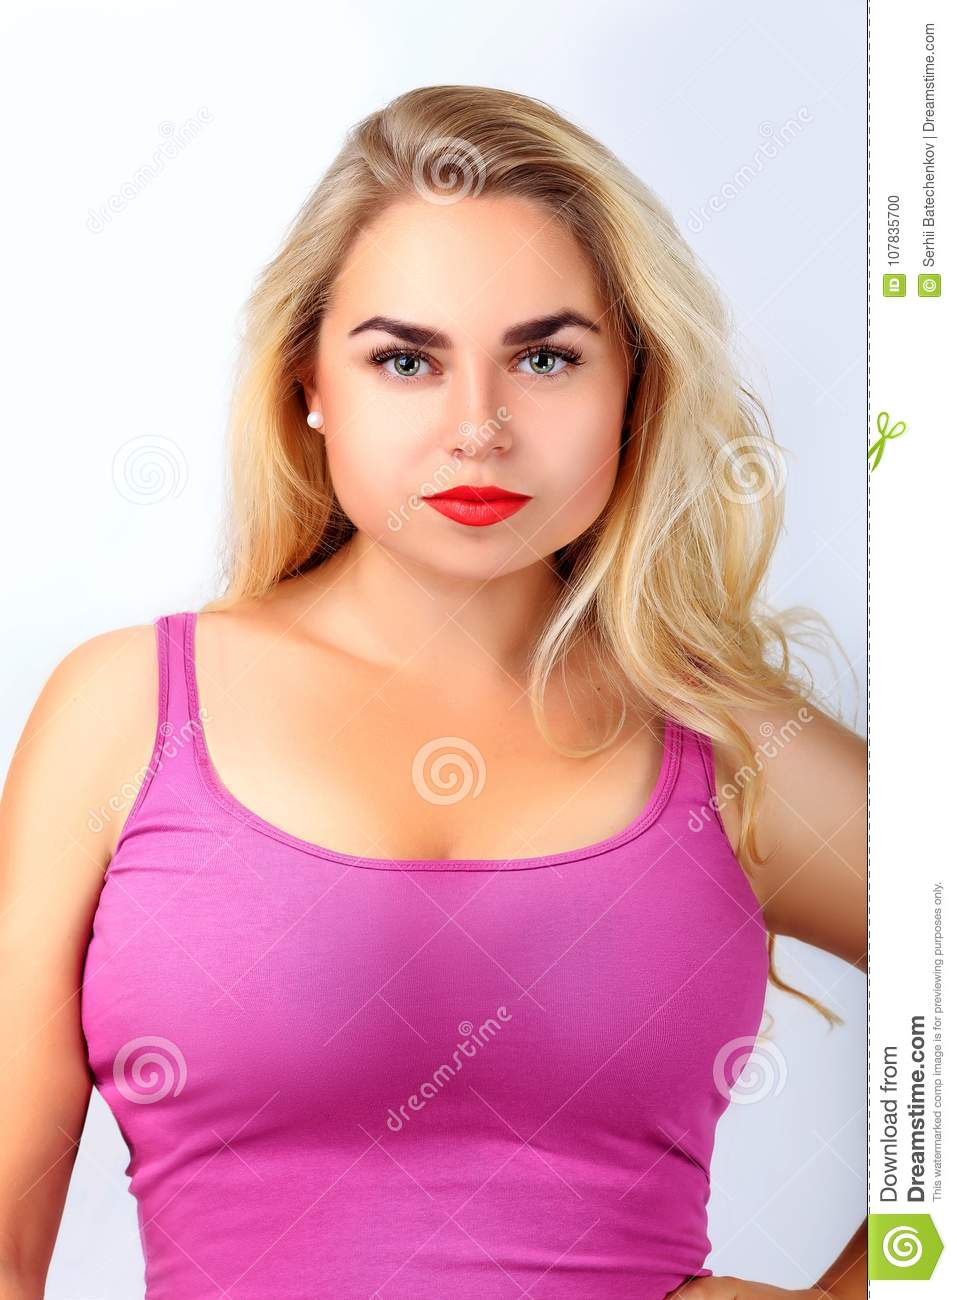 Portrait Of A Beautiful Young Blonde Girl With Perfect Skin And Big Breasts